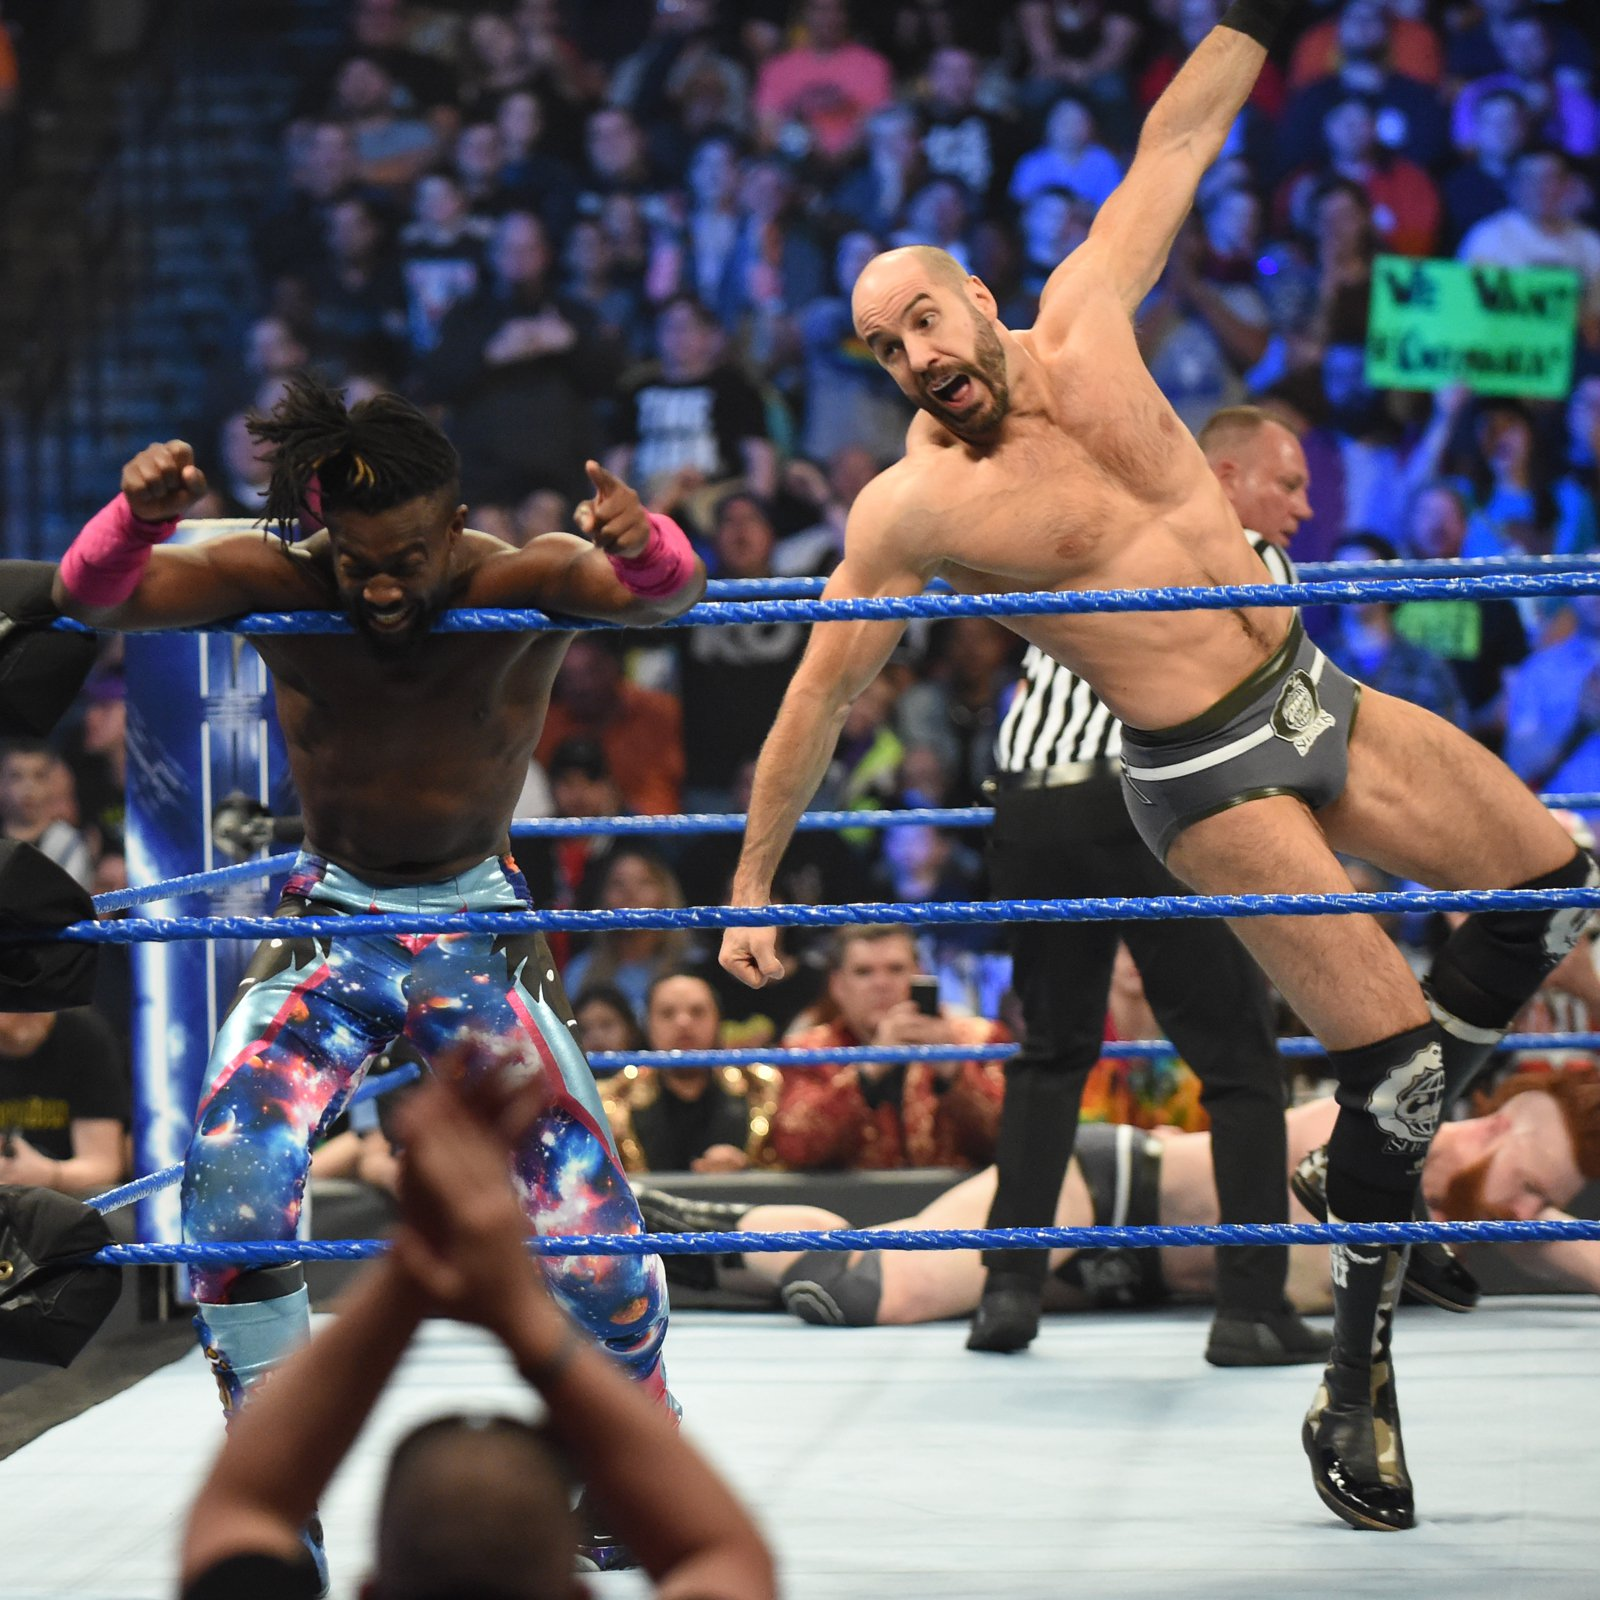 ... but Cesaro strikes from behind!